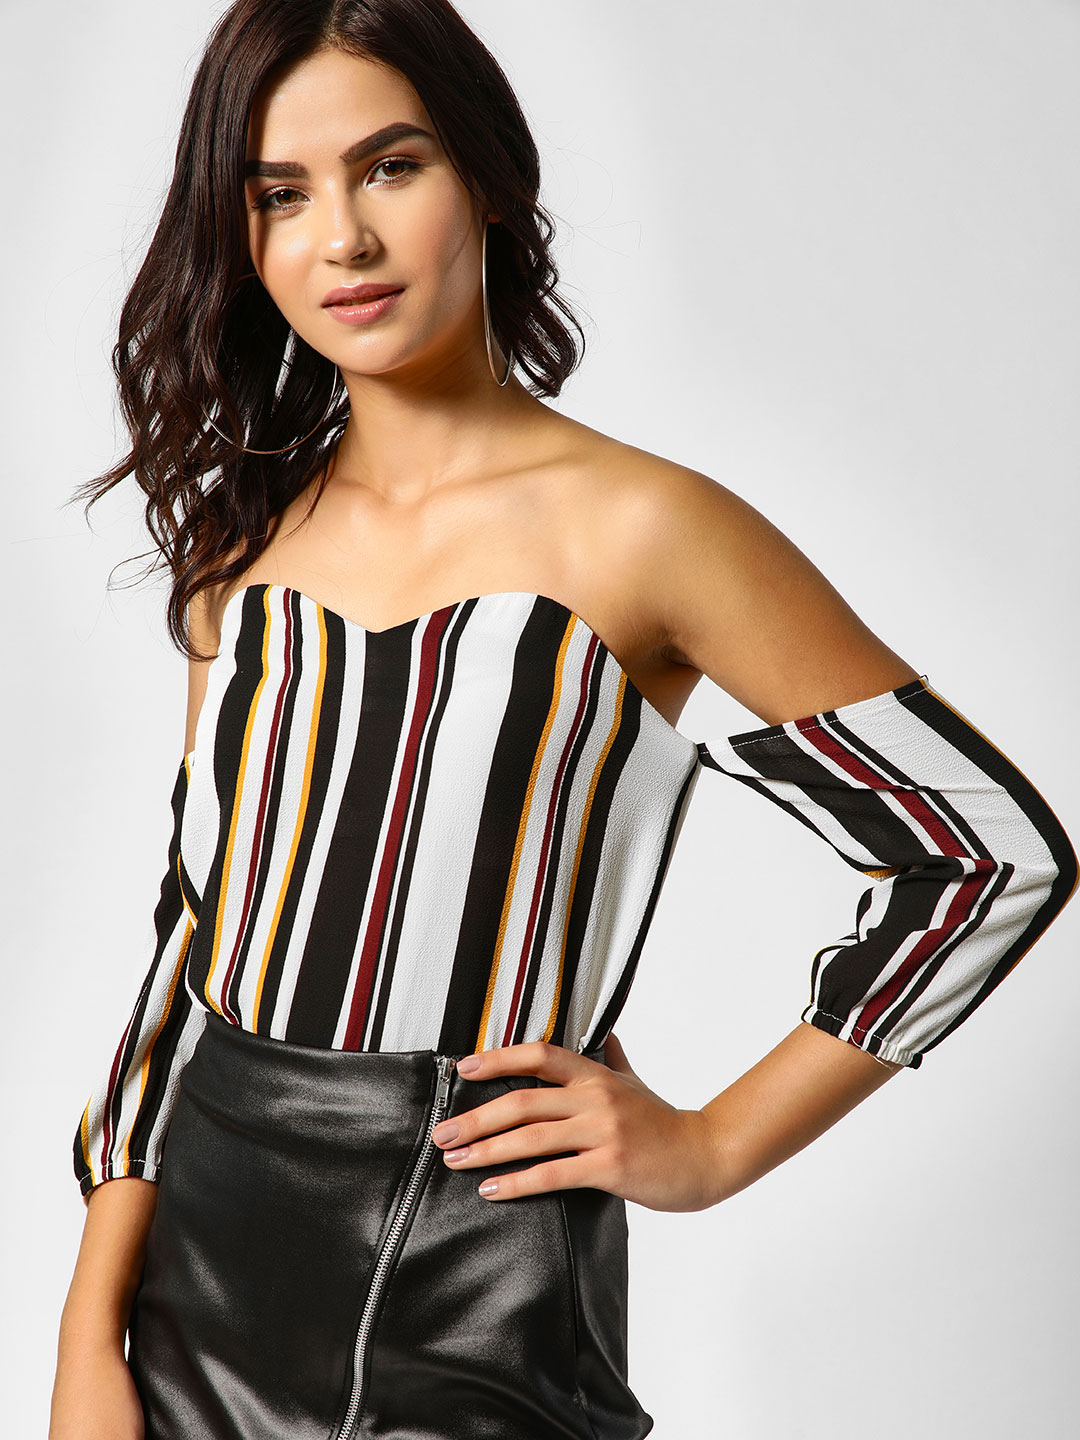 Lola May Multi Striped Bardot Bustier Top 1